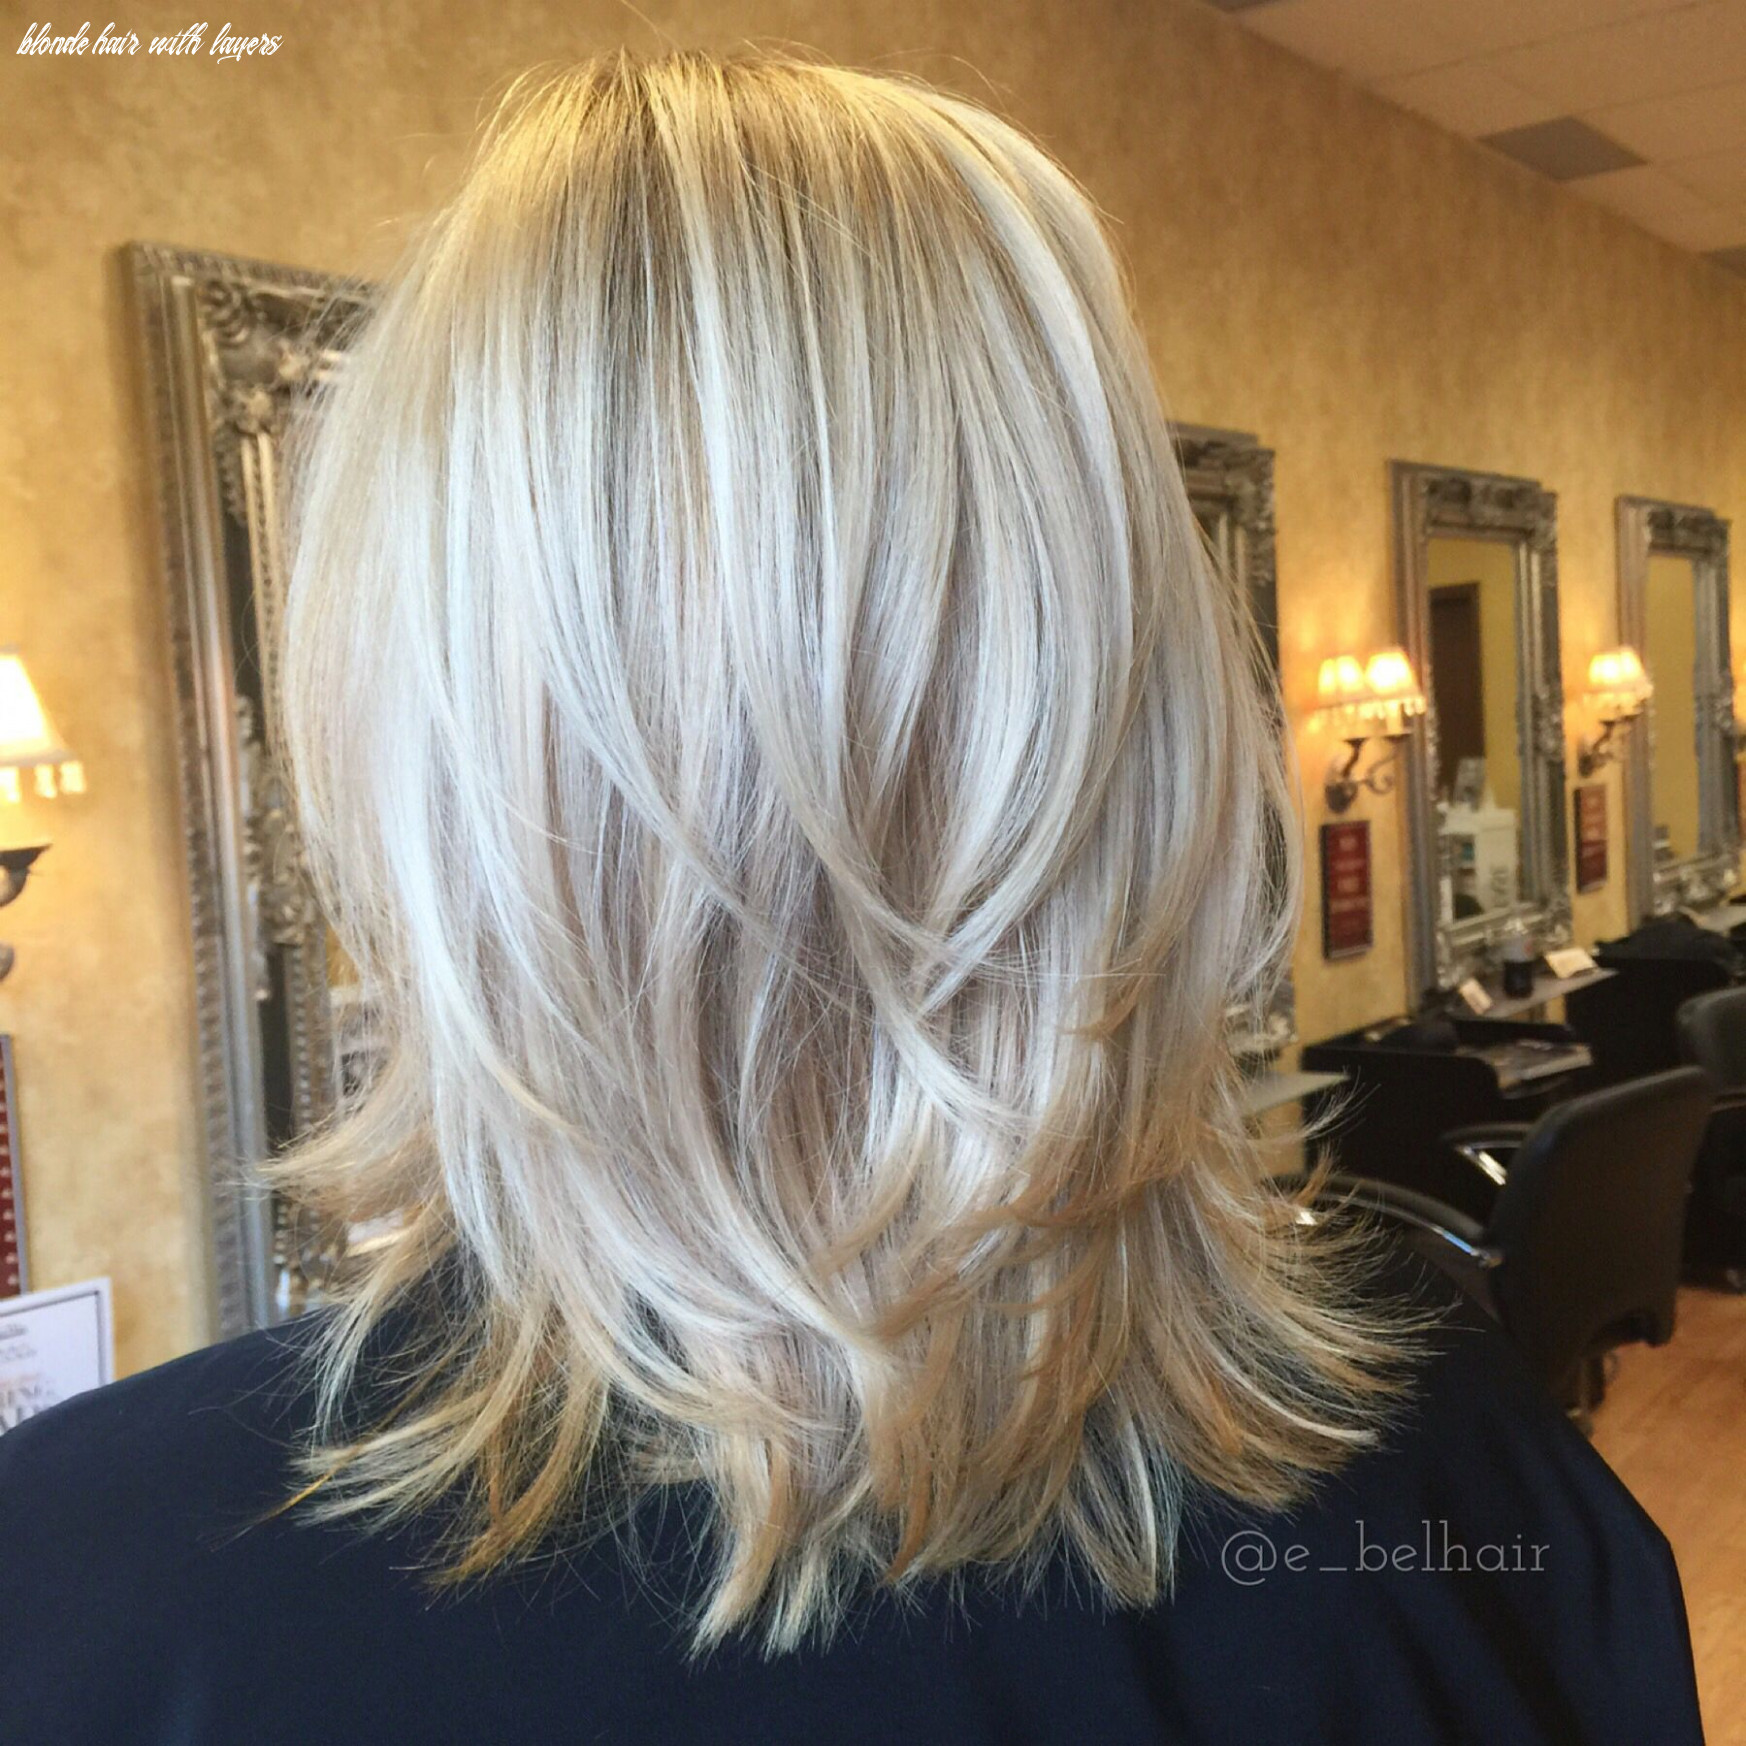 Pin on hair by emily belcher blonde hair with layers